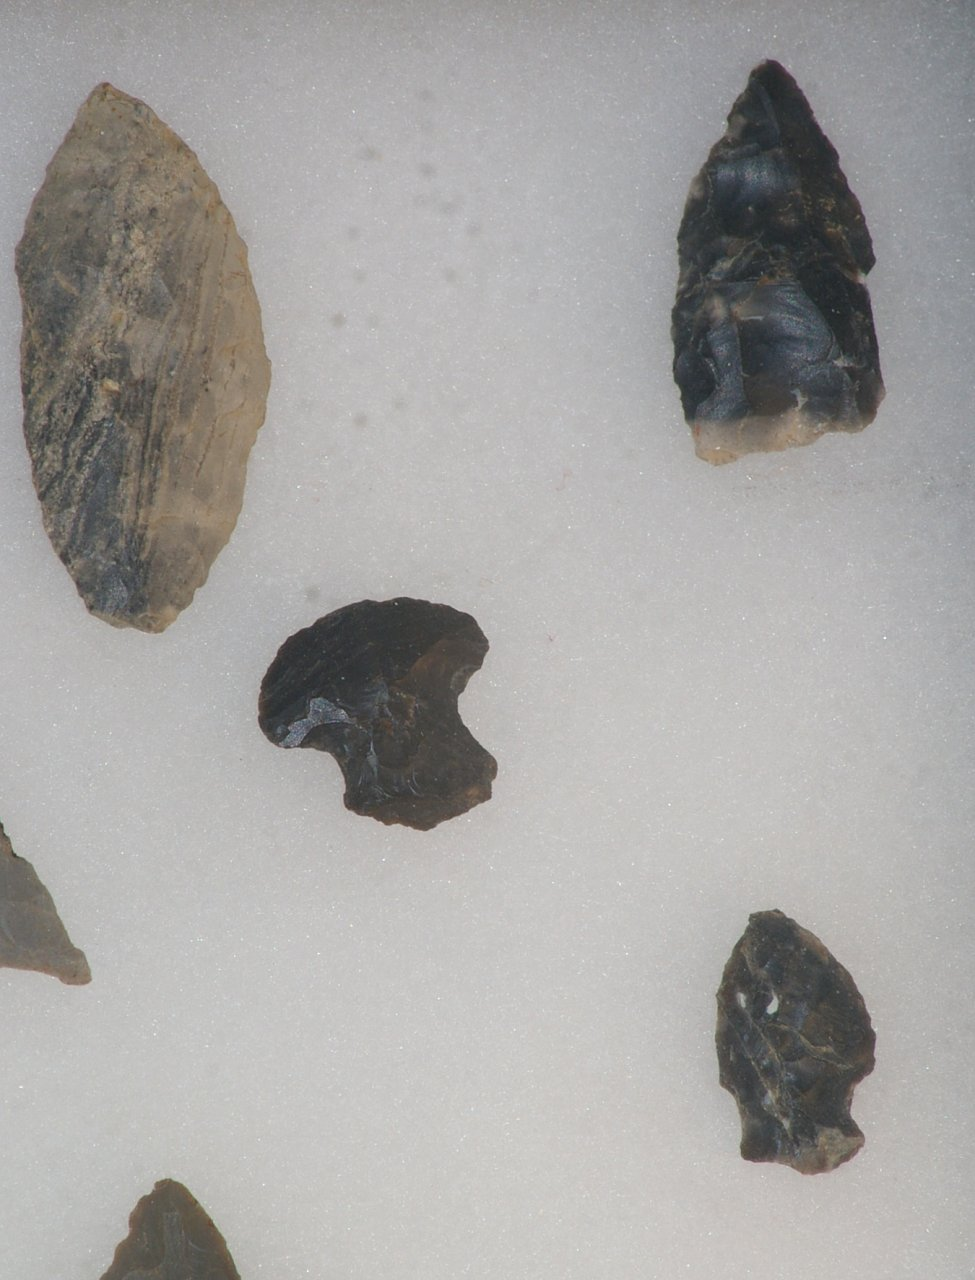 American Indian Artifacts with Arrowheads in Display Case